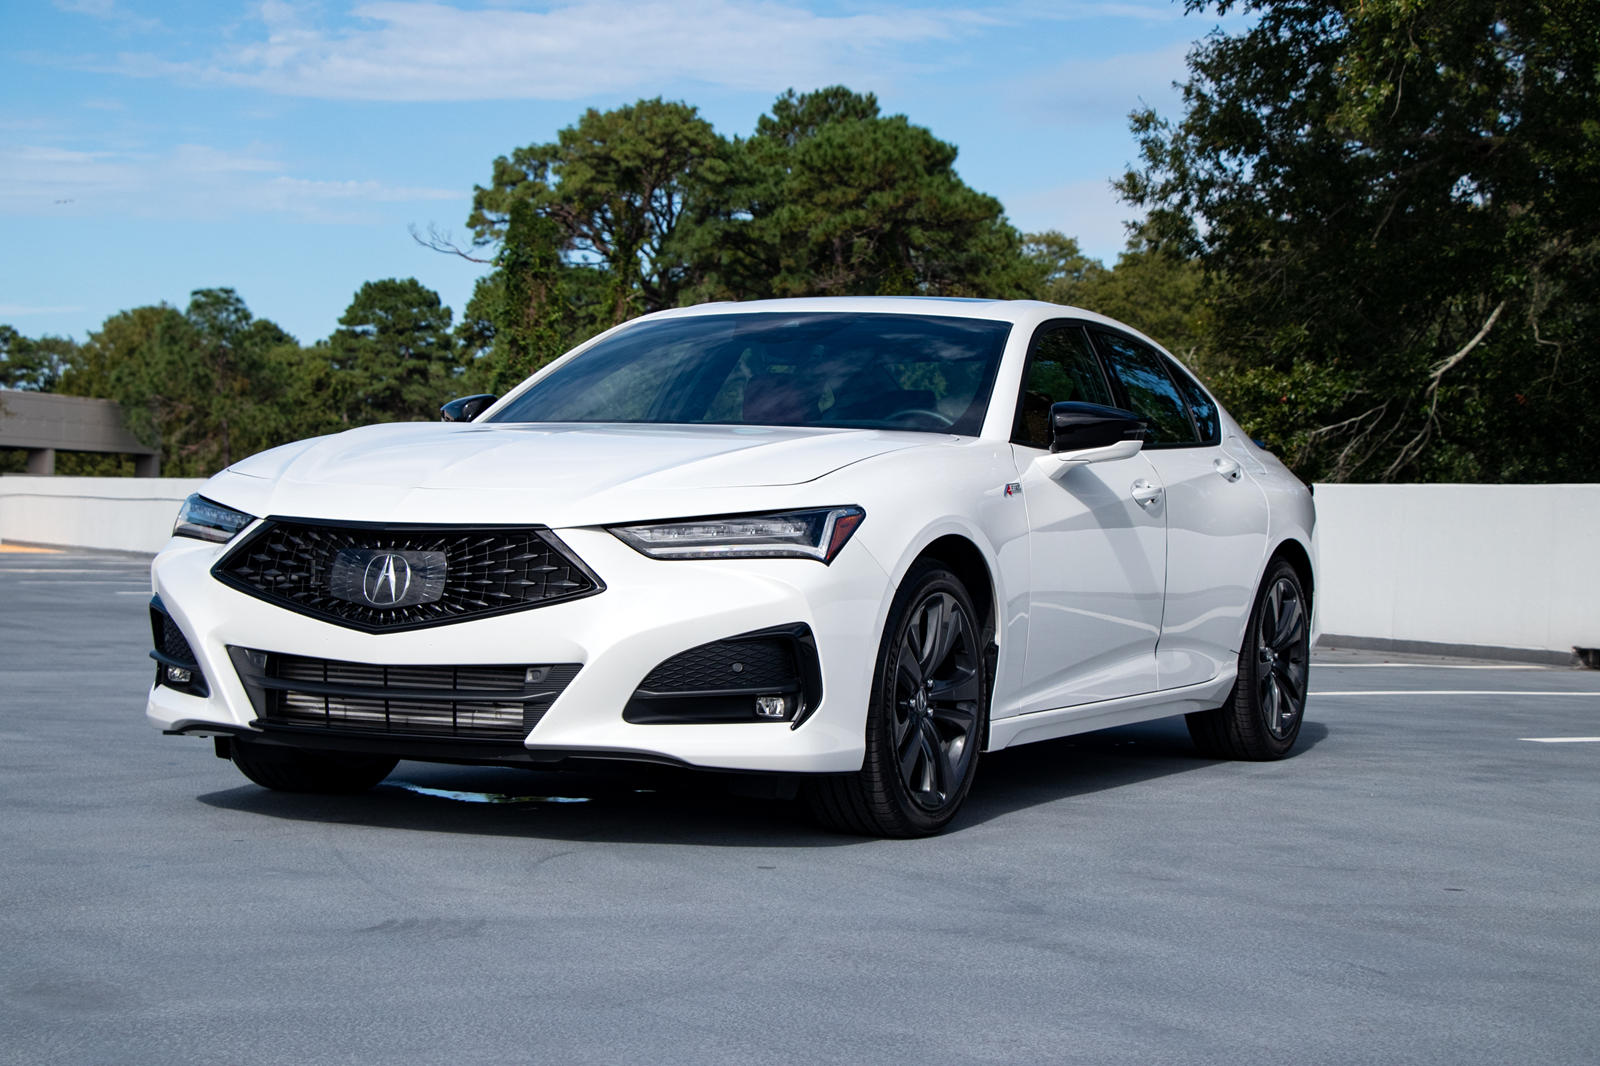 2021 Acura Tlx Review Trims Specs Price New Interior Features Exterior Design And Specifications Carbuzz